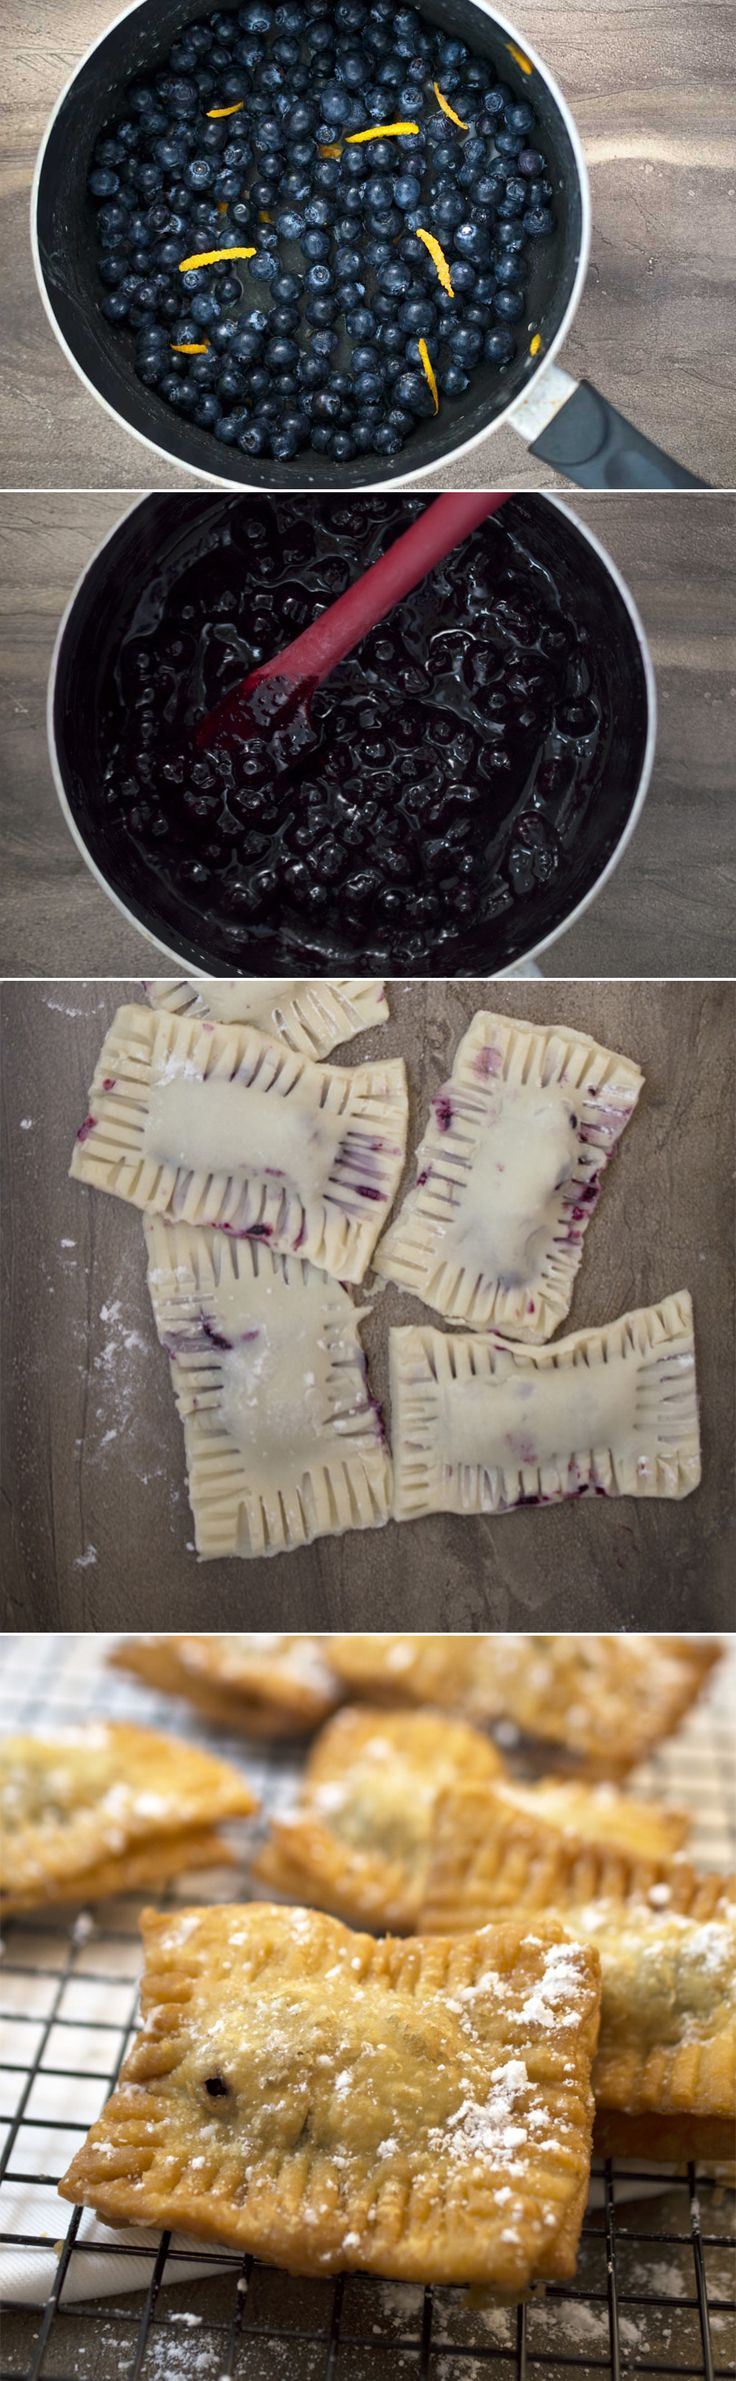 Homemade blueberry pie pockets by chefsavvy.com. Made with a fresh homemade blueberry sauce. #recipe #dessert #blueberry